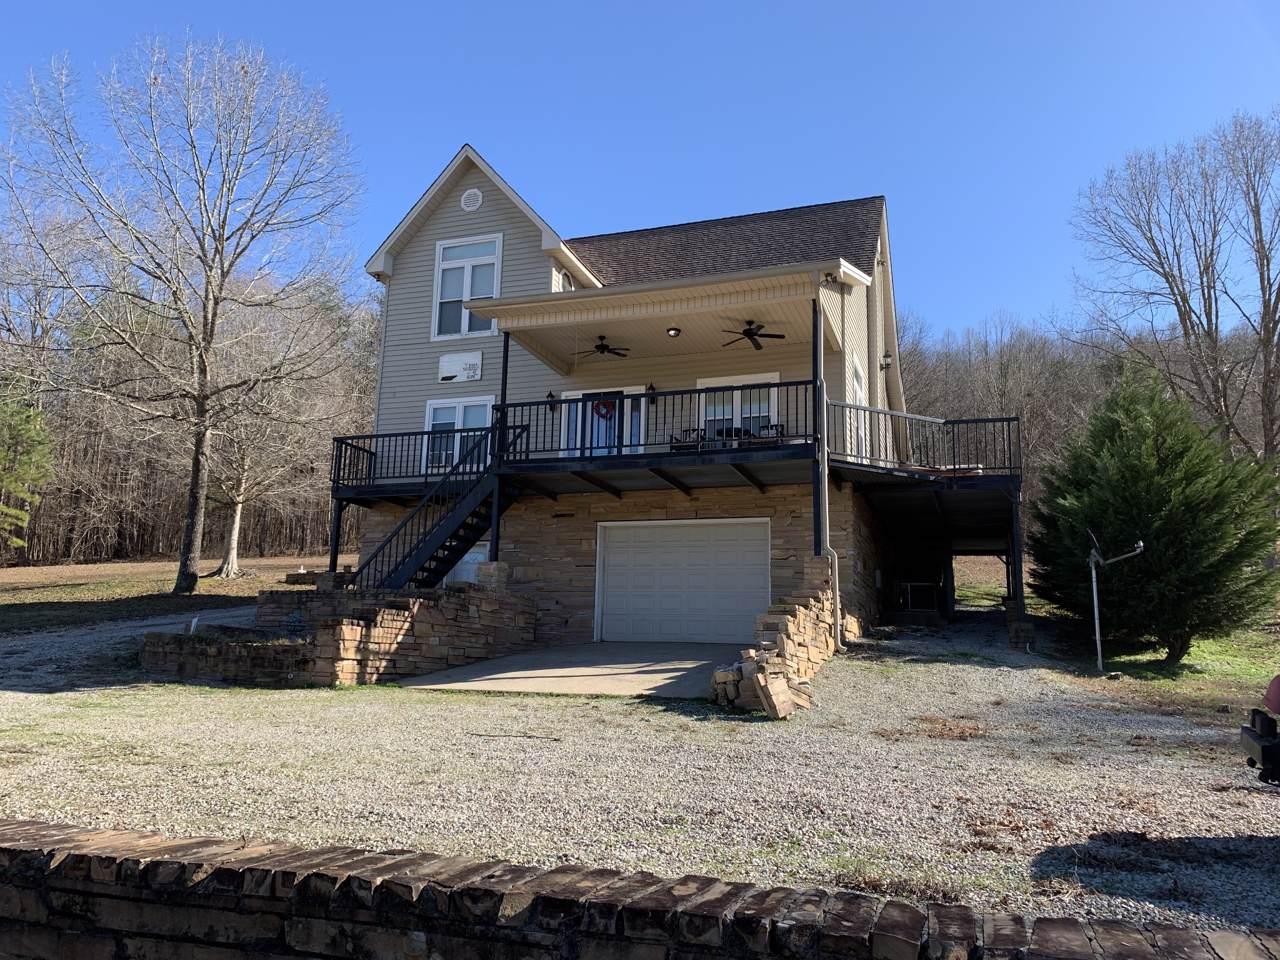 3117 Second Crk Rd - Photo 1